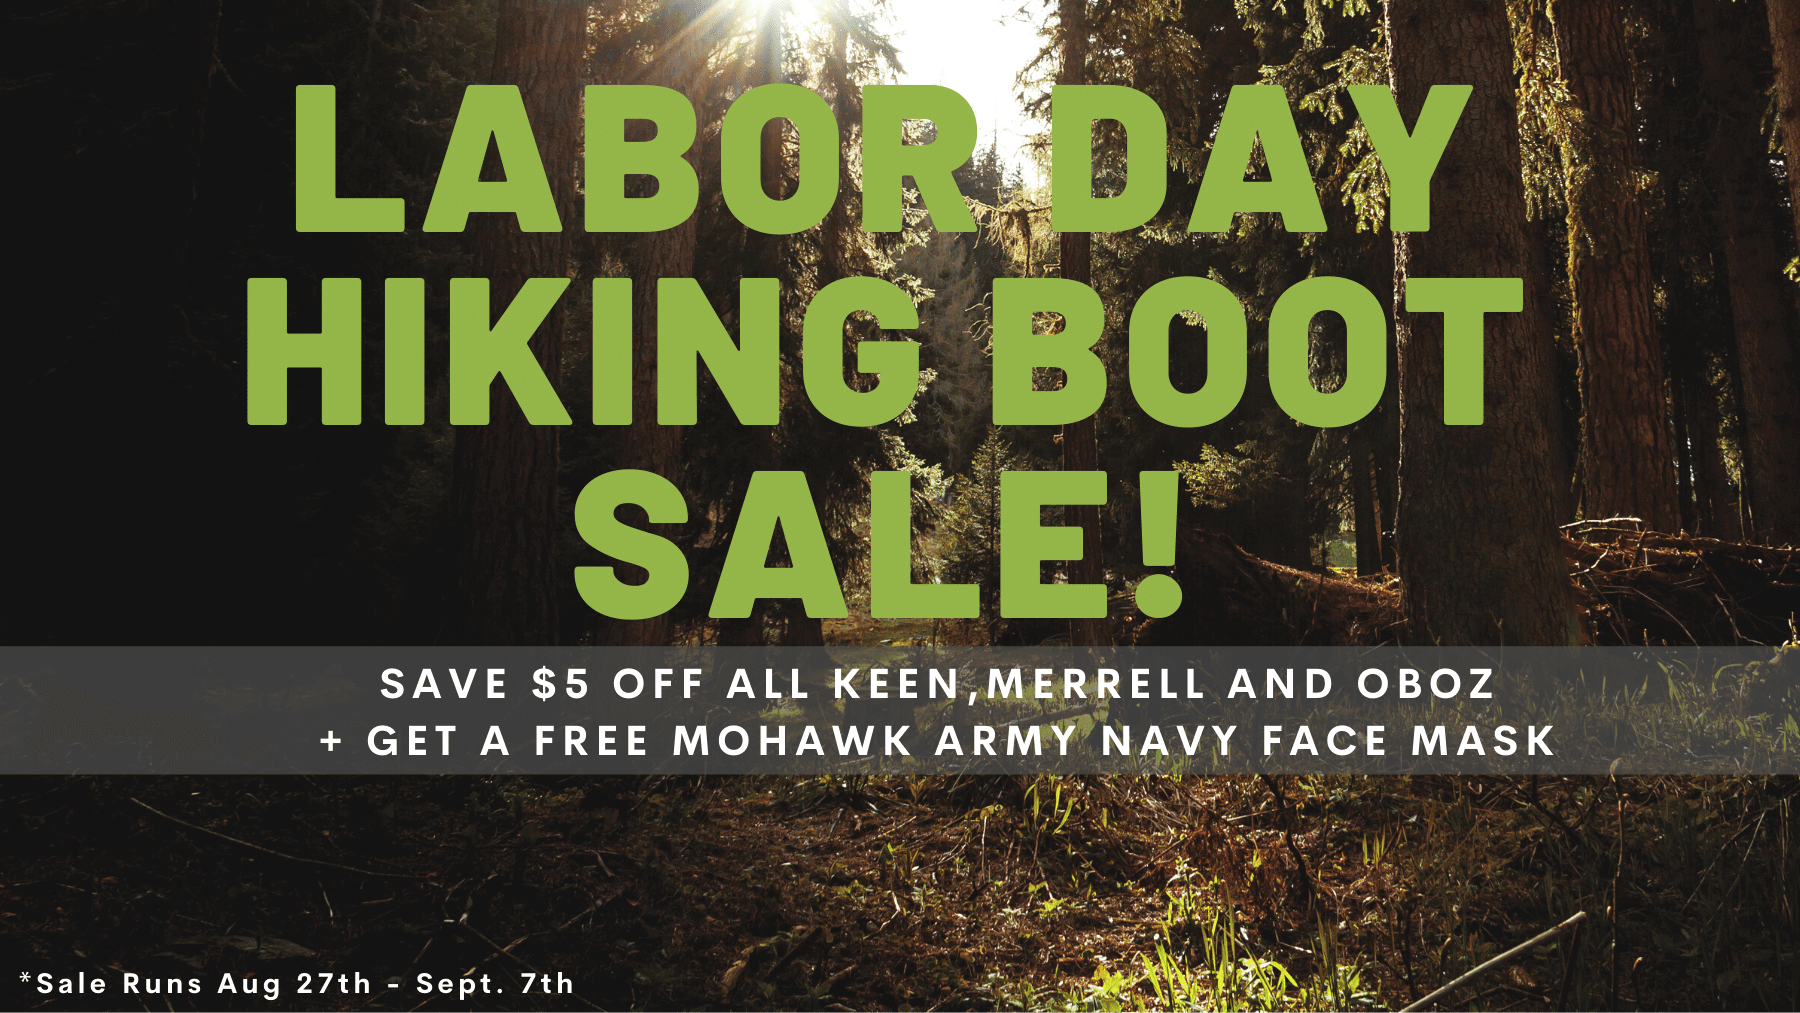 Labor Day Hiking Boot Sale. Save $5 off Keen, Merrell and Oboz, plus receive a free Mohawk Army Navy Face Mask